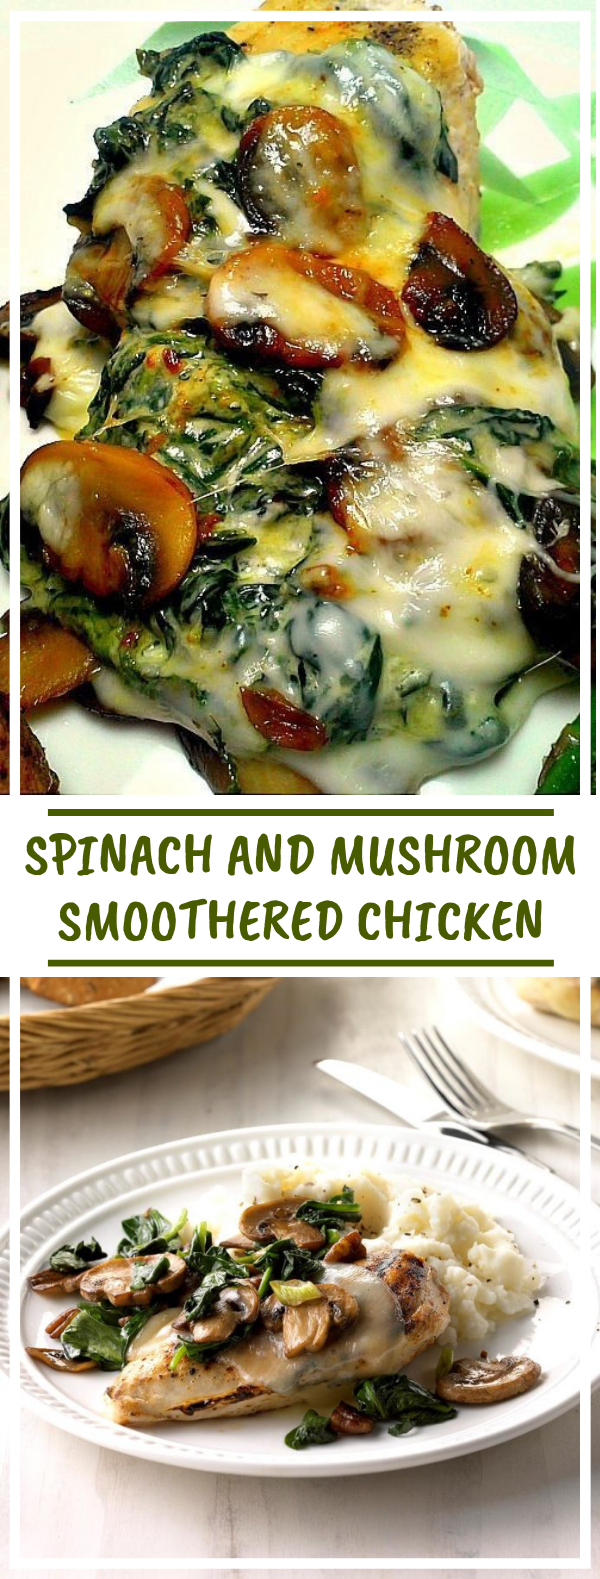 Spinach and Mushroom Smothered Chicken #lowcarb #healthyfood